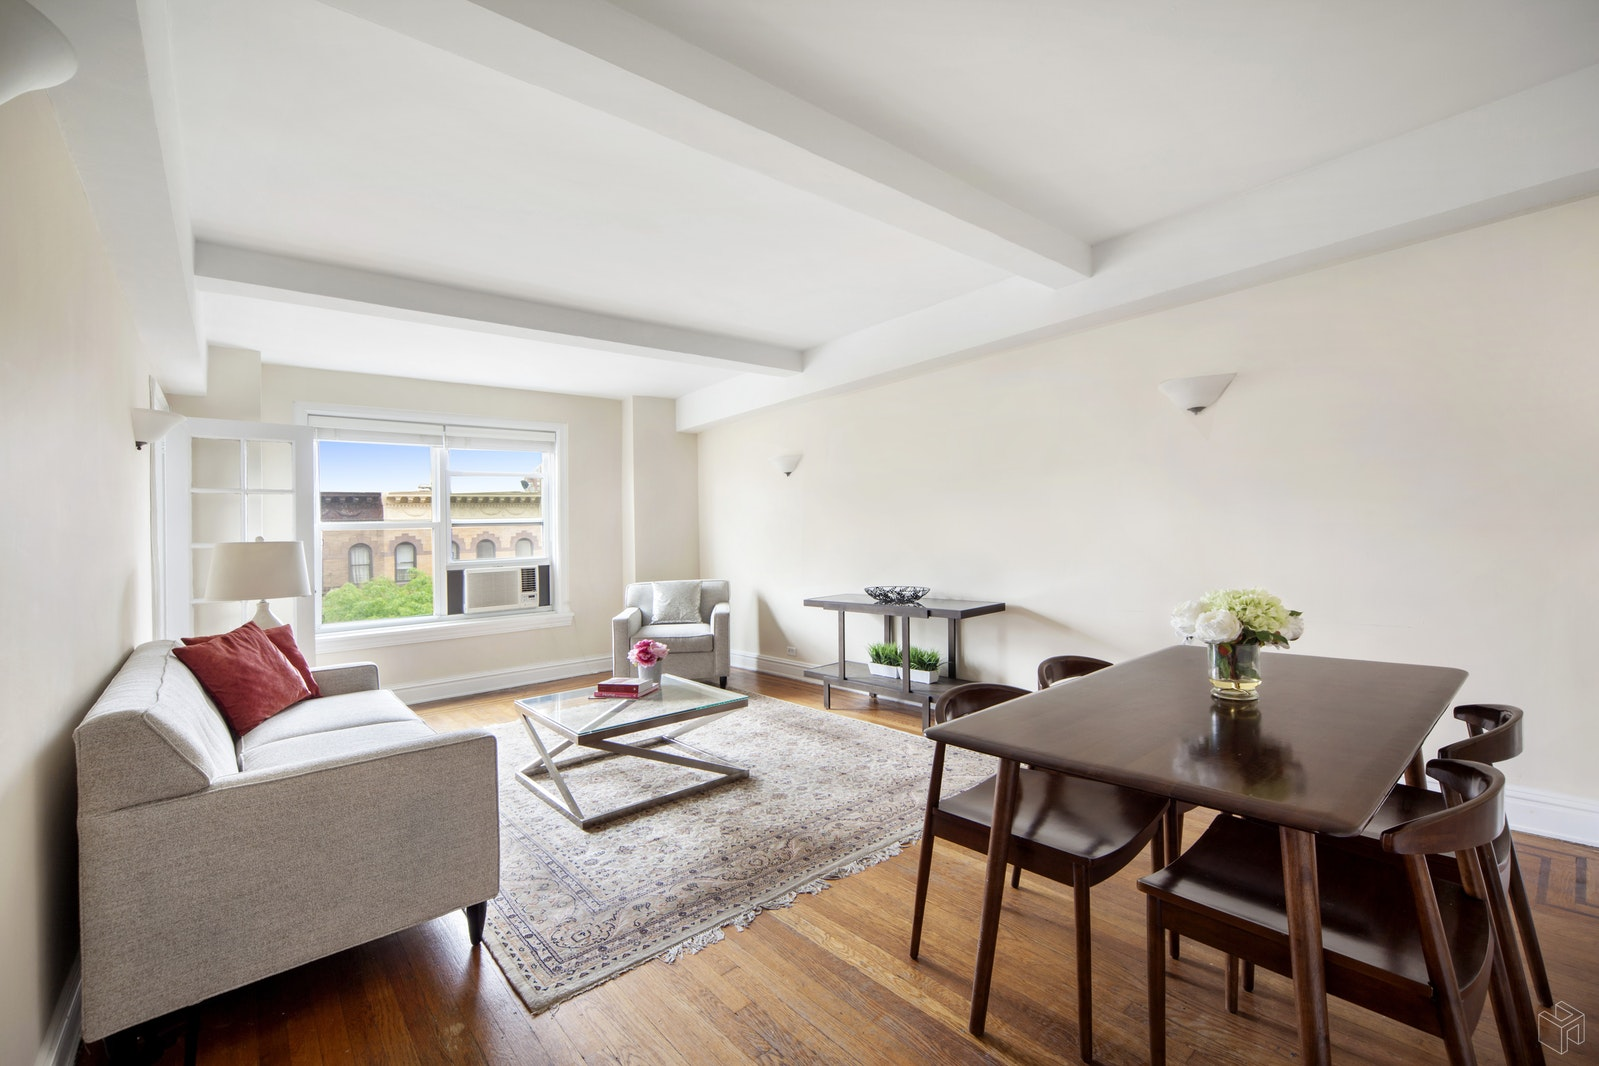 200 West  108th Street  6a, Upper West Side, NYC, 10025, $1,250,000, Property For Sale, ID# 18221987, Halstead